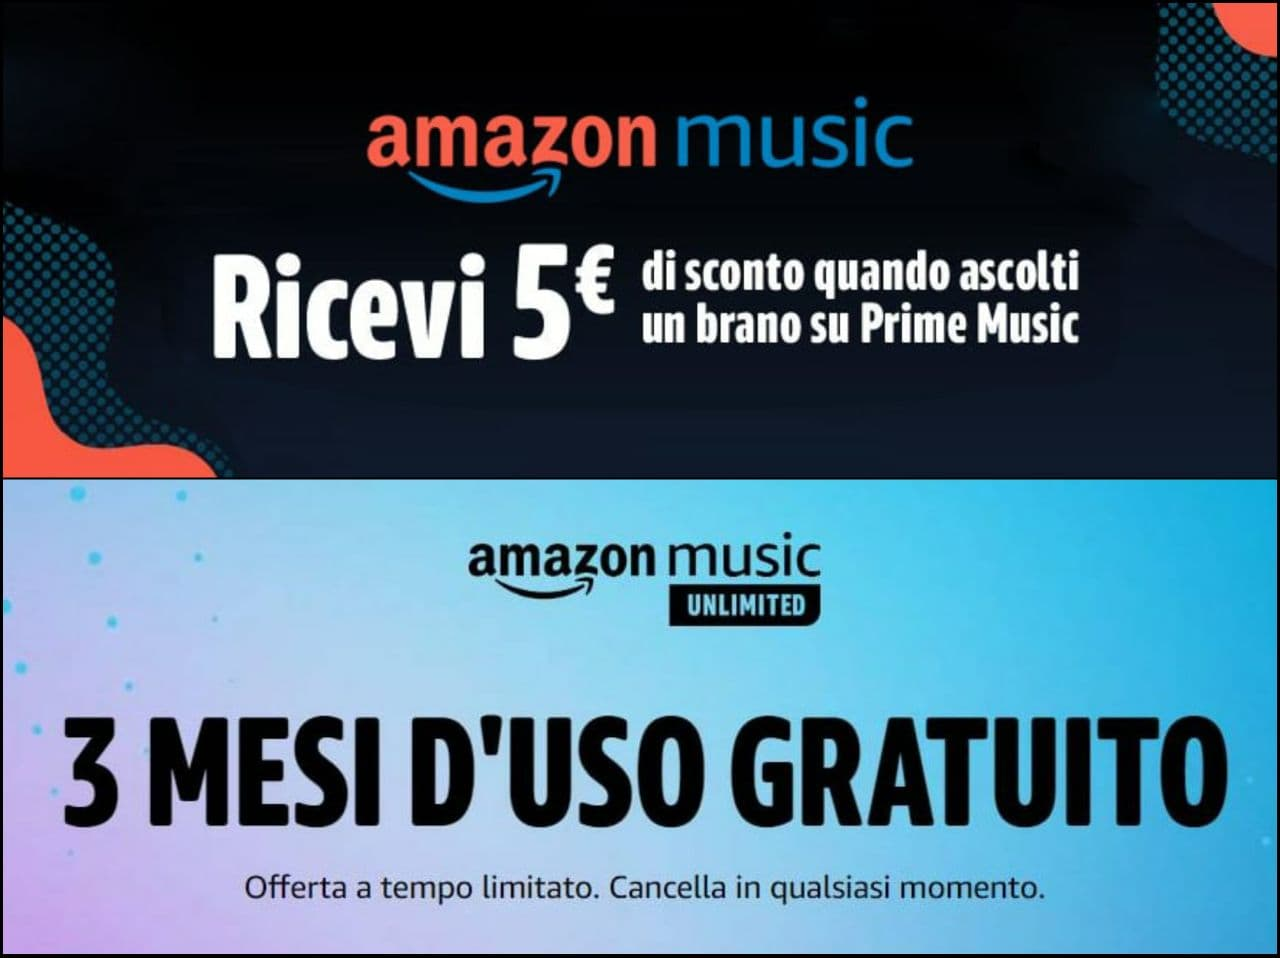 amazon music unlimited promo